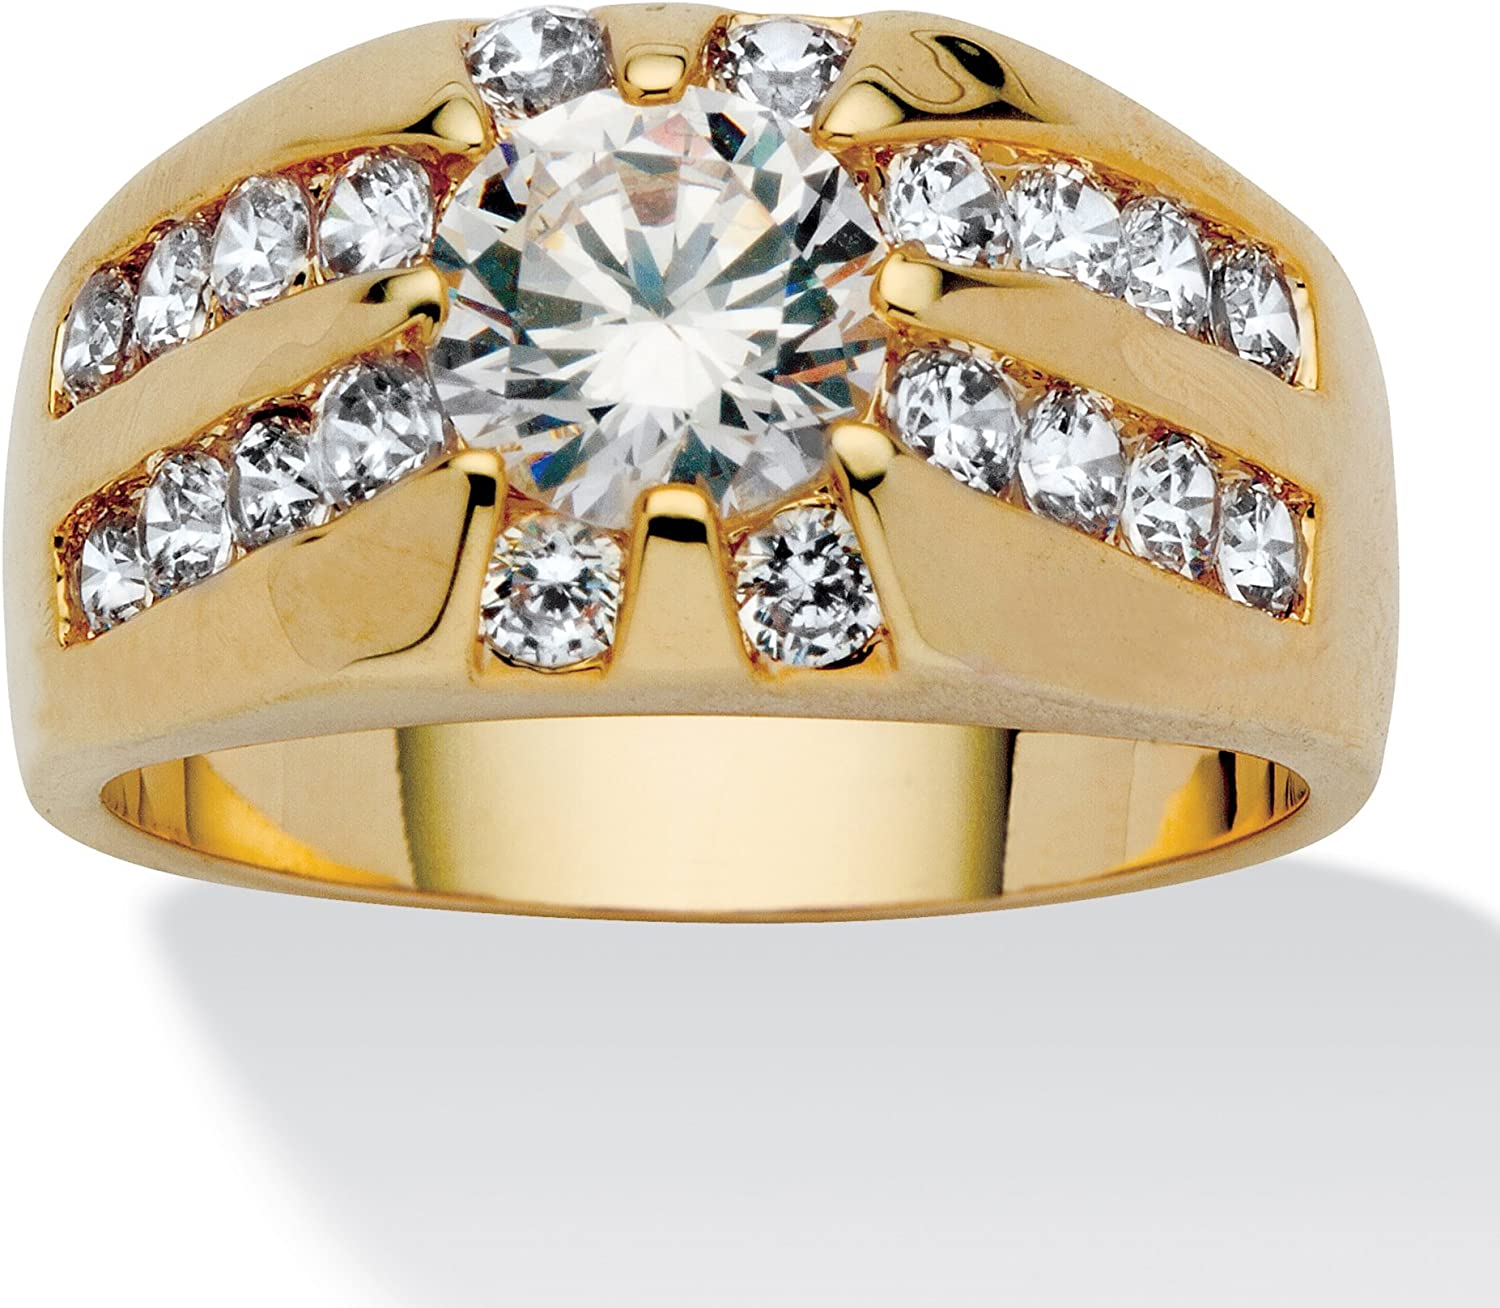 Palm Beach Jewelry Men's 14K Yellow Gold Plated Round Cubic Zirconia Channel Set Ring